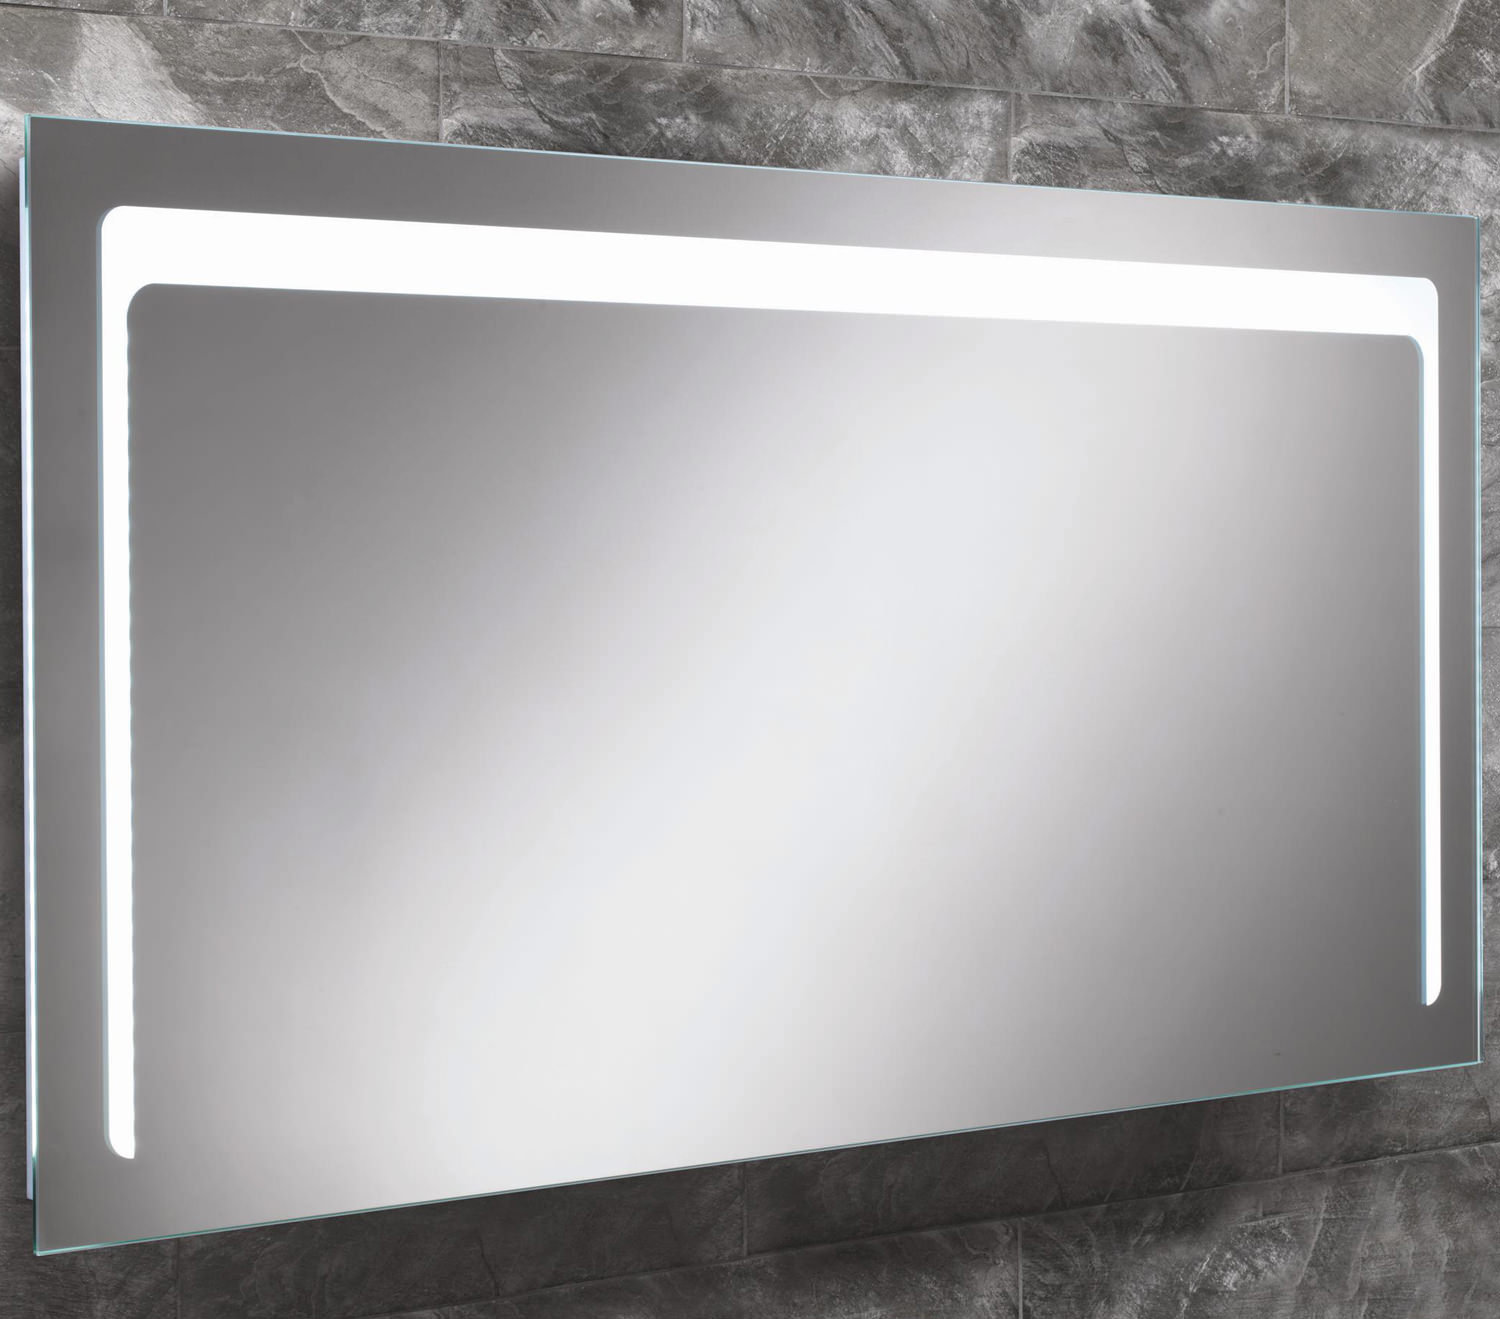 Infinity bathroom mirror - Hib Christa Steam Free Led Back Lit Bathroom Mirror 1200 X 600mm